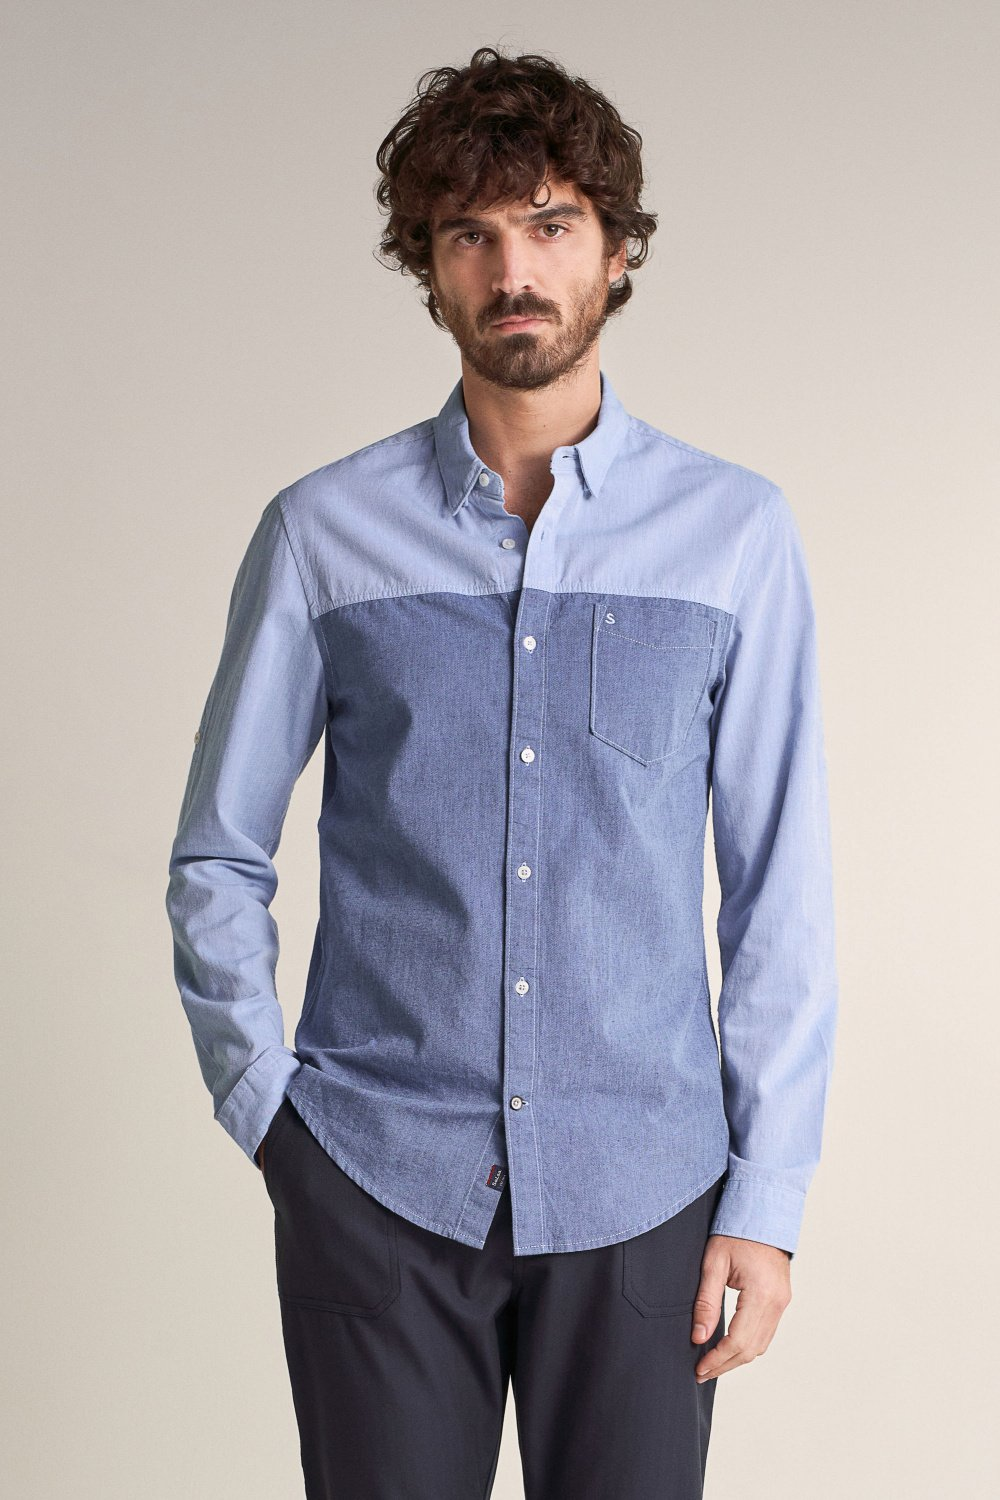 Slim fit long sleeve shirt made of cotton and denim - Salsa